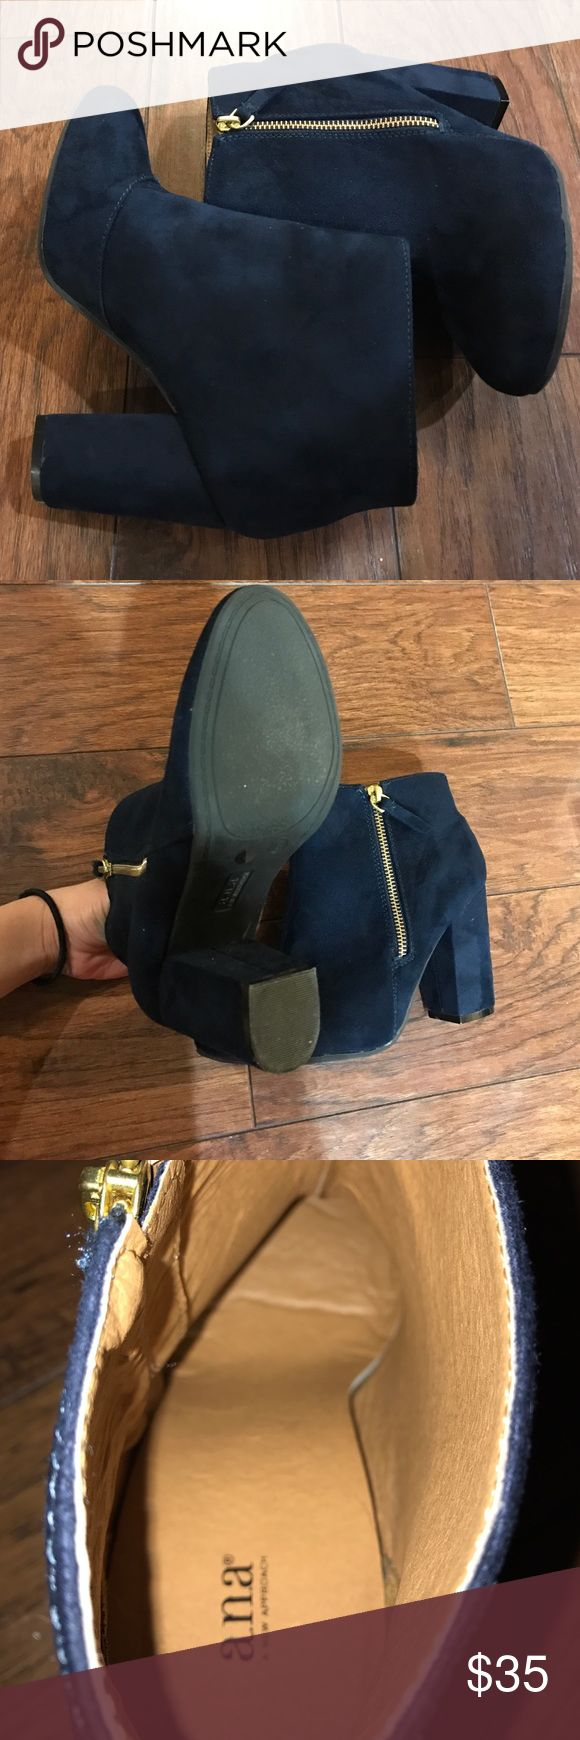 a.n.a navy blue booties navy blue booties with a wedge. Worn once. a.n.a Shoes Heeled Boots